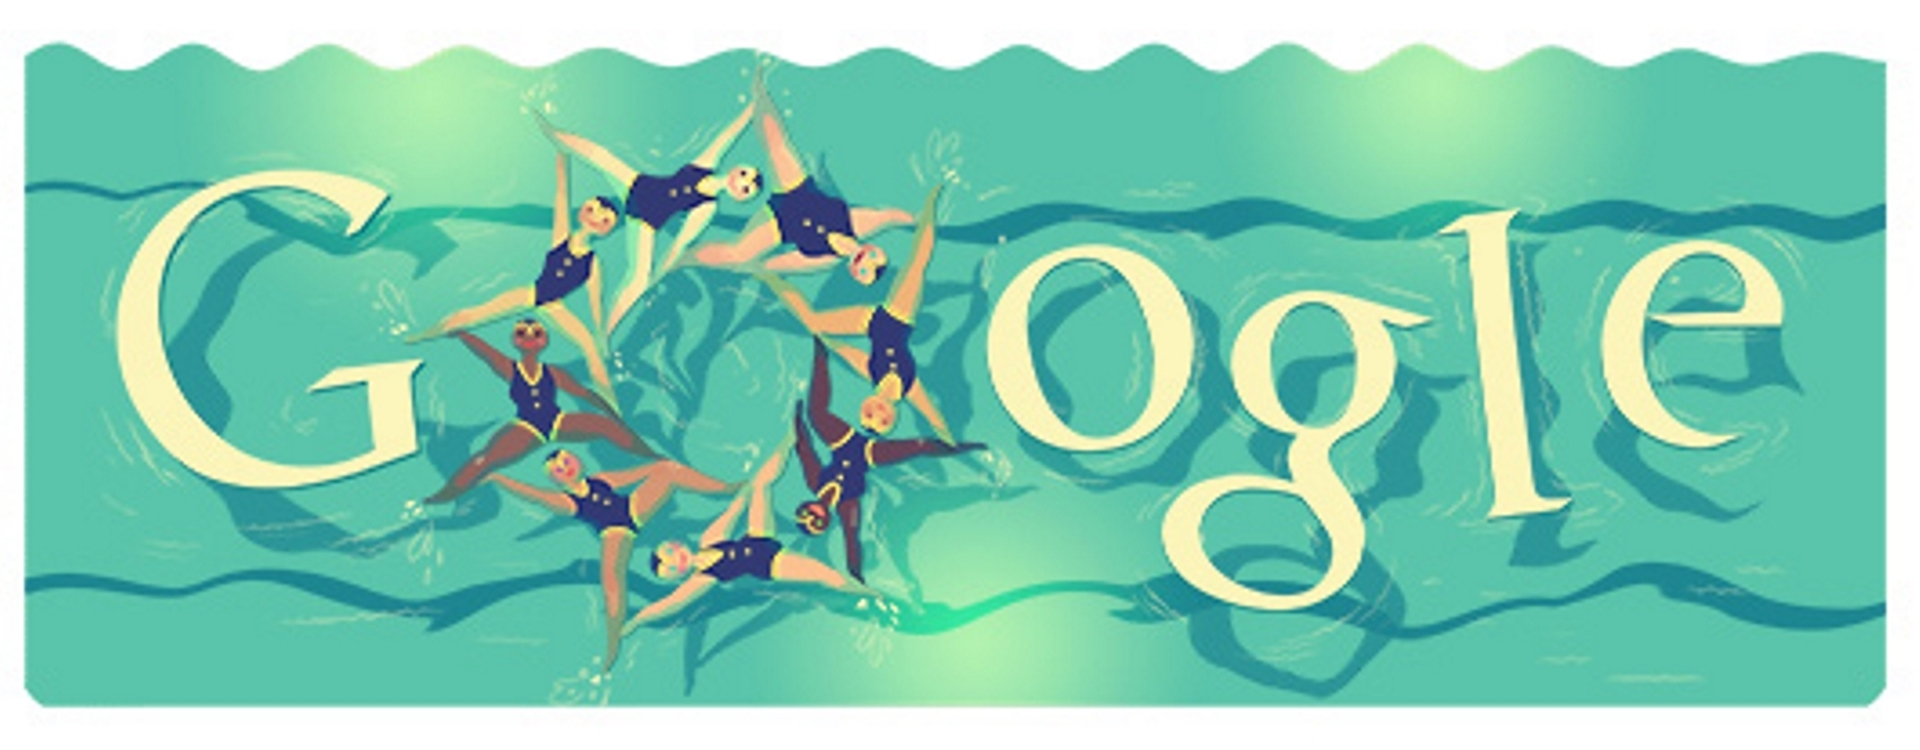 Olympic Games 2012 Synchronized Swimming